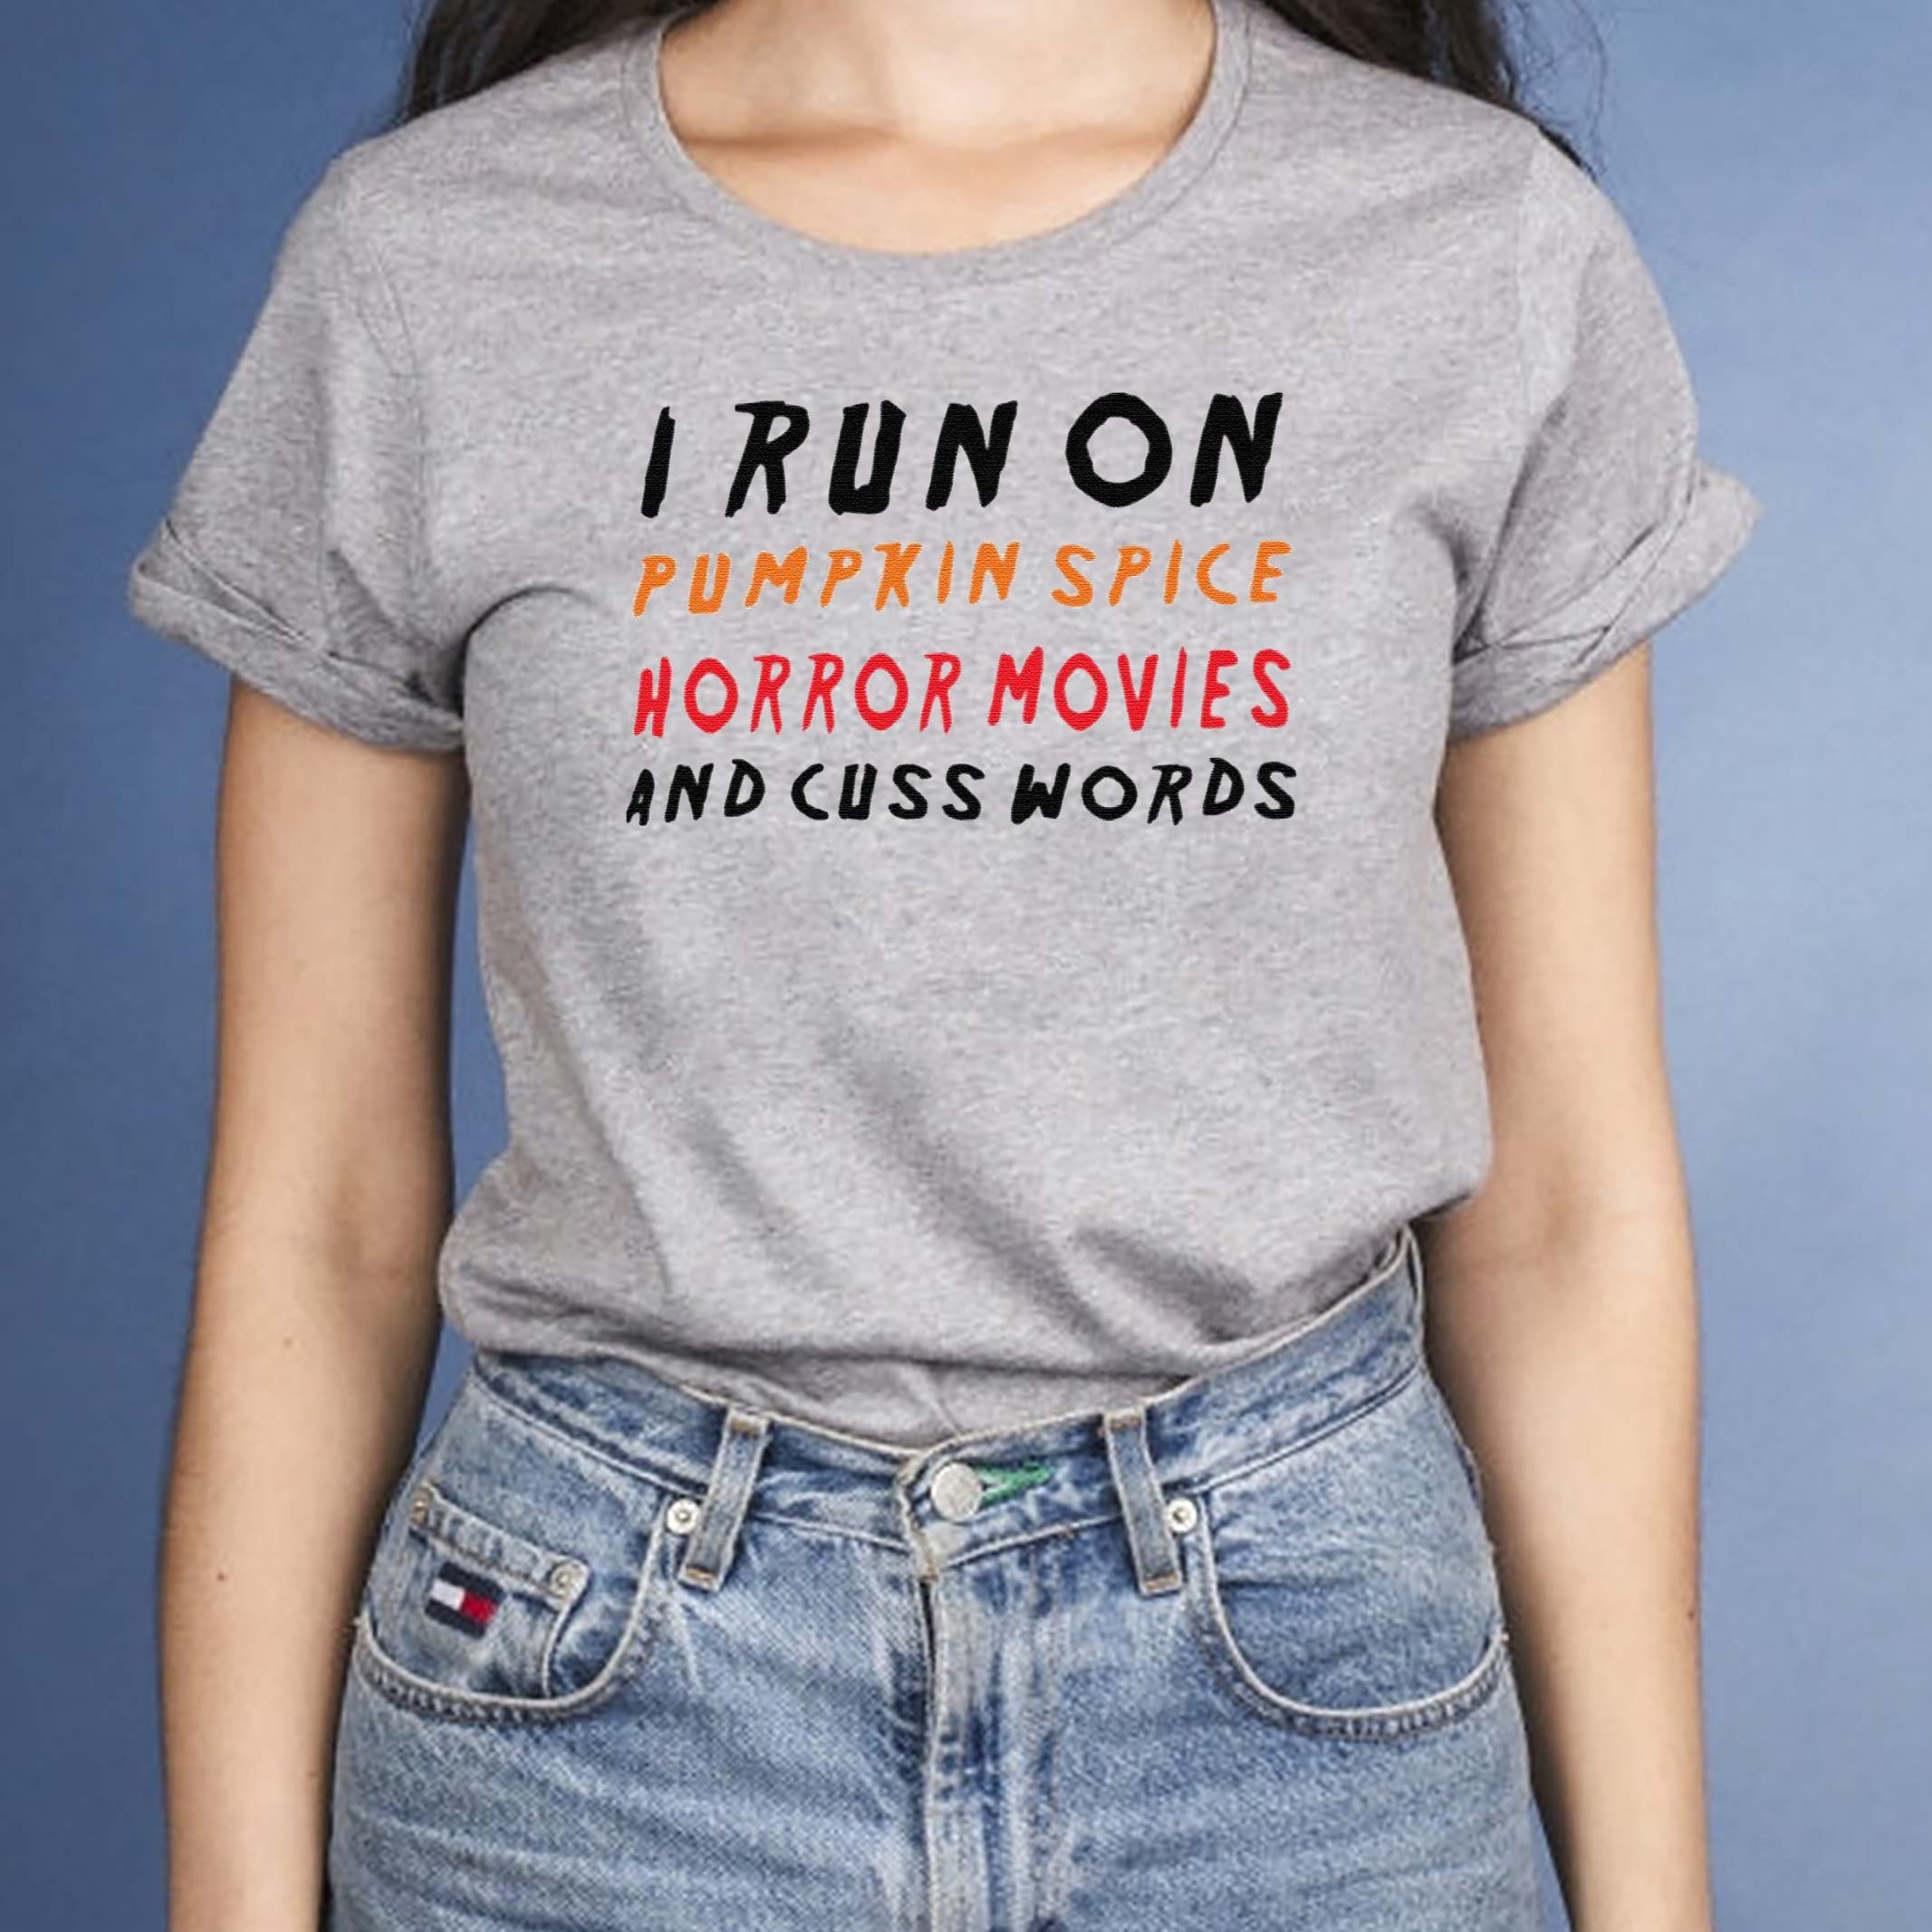 I-Run-On-Pumpkin-Spice-Horror-Movies-And-Cuss-Words-Shirt